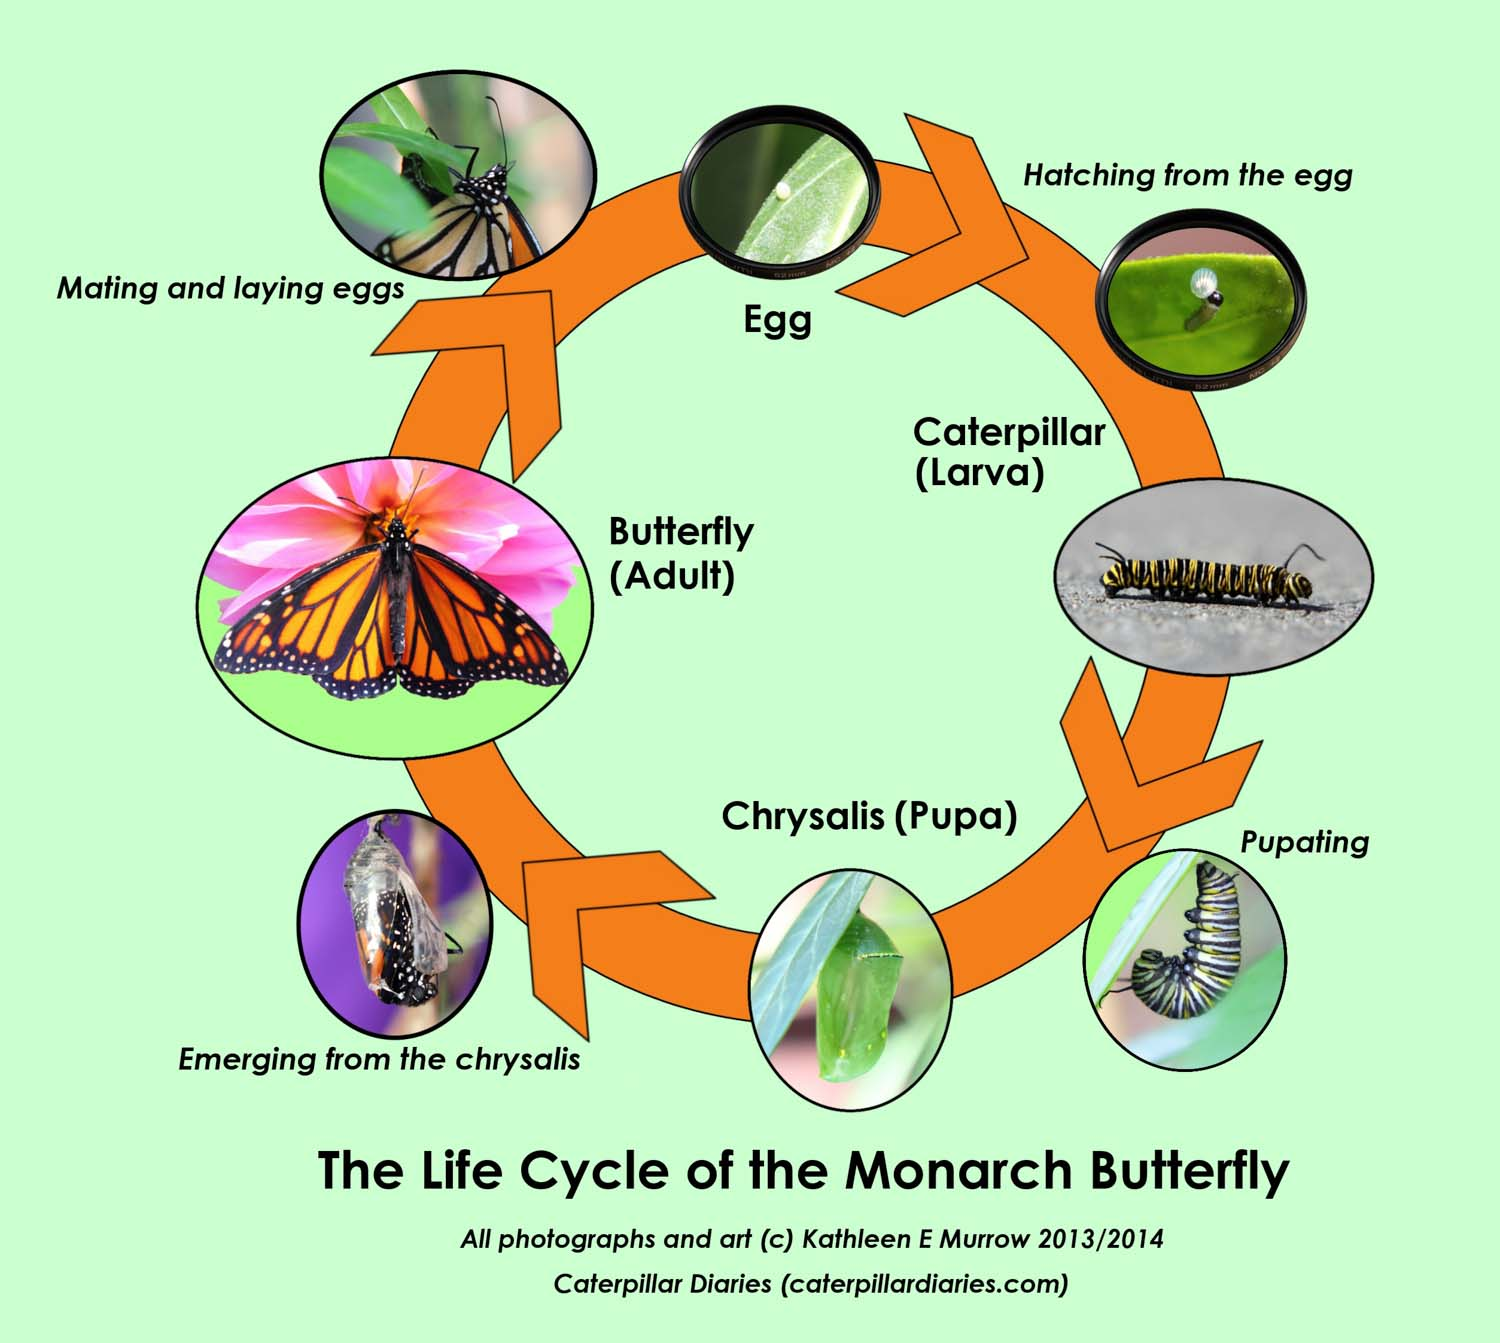 A diagram of the life cycle of the monarch butterfly showing all the stages and transitions: egg, hatching, caterpillar (larva), pupating, chrysalis (pupa), elcosing (emerging), butterfly (adult), and mating and laying eggs